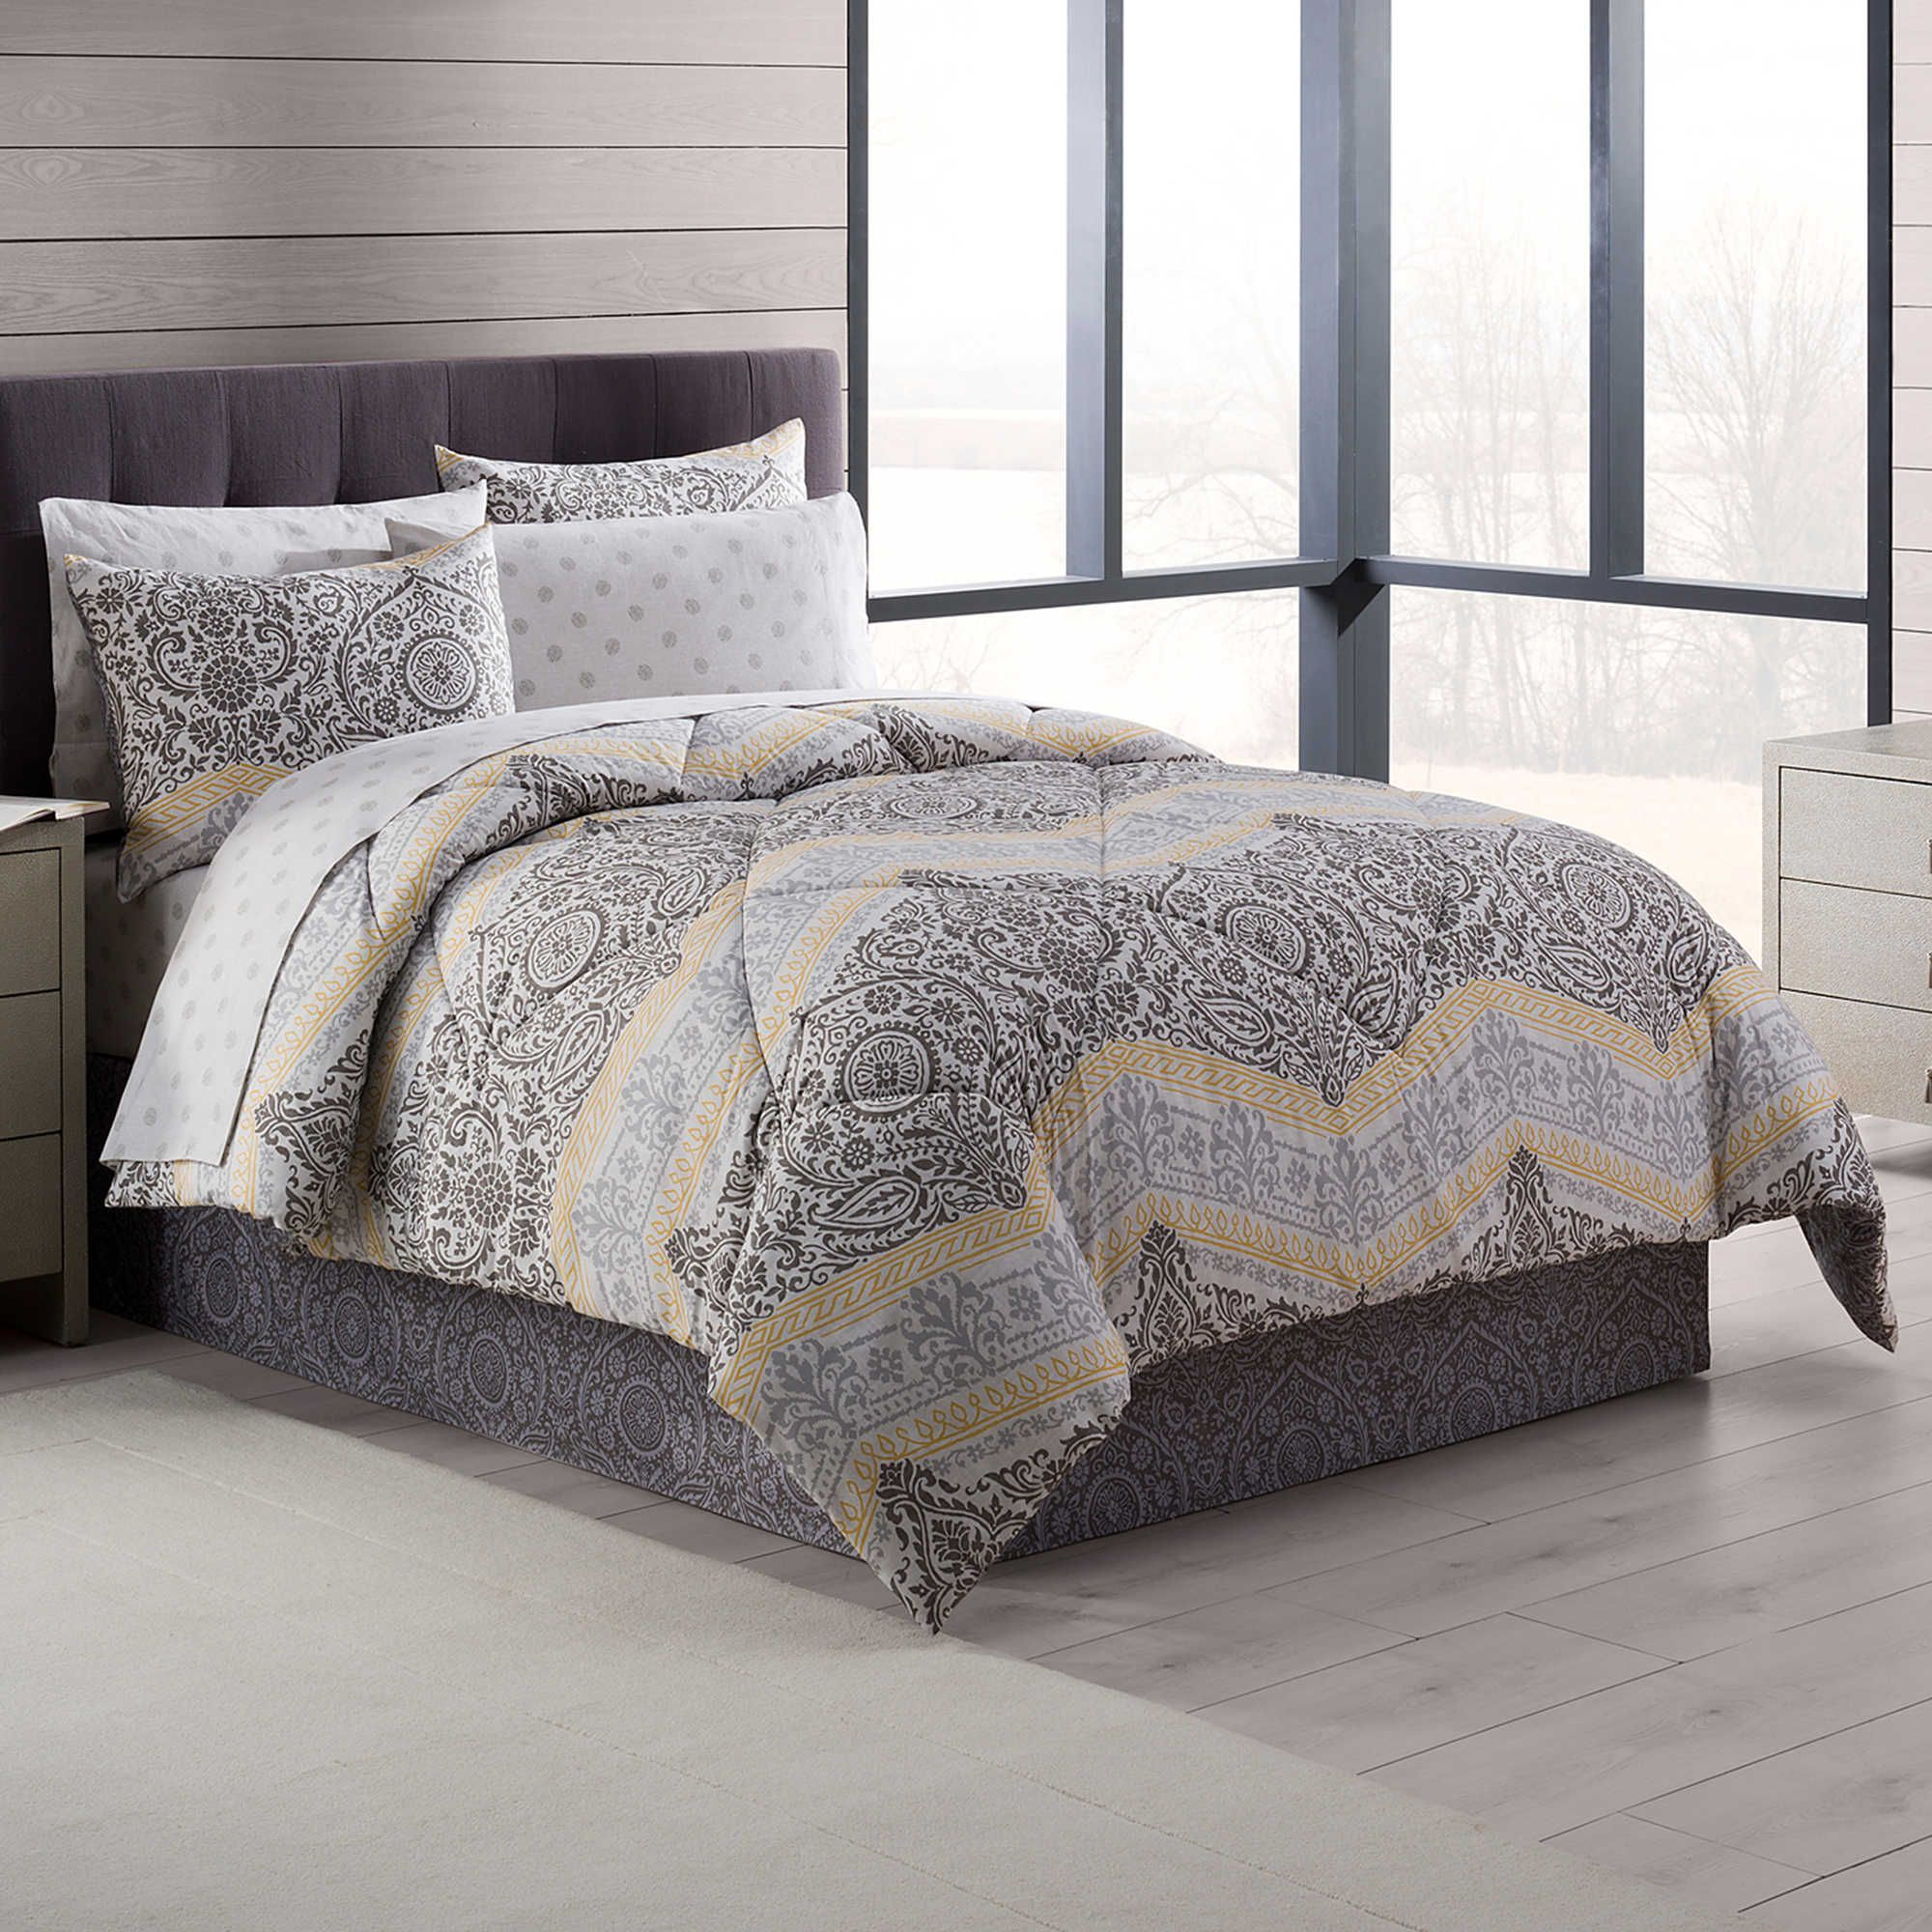 modern bedding comforter bedroom pop that will young make queen grey chevron yellow gray and your